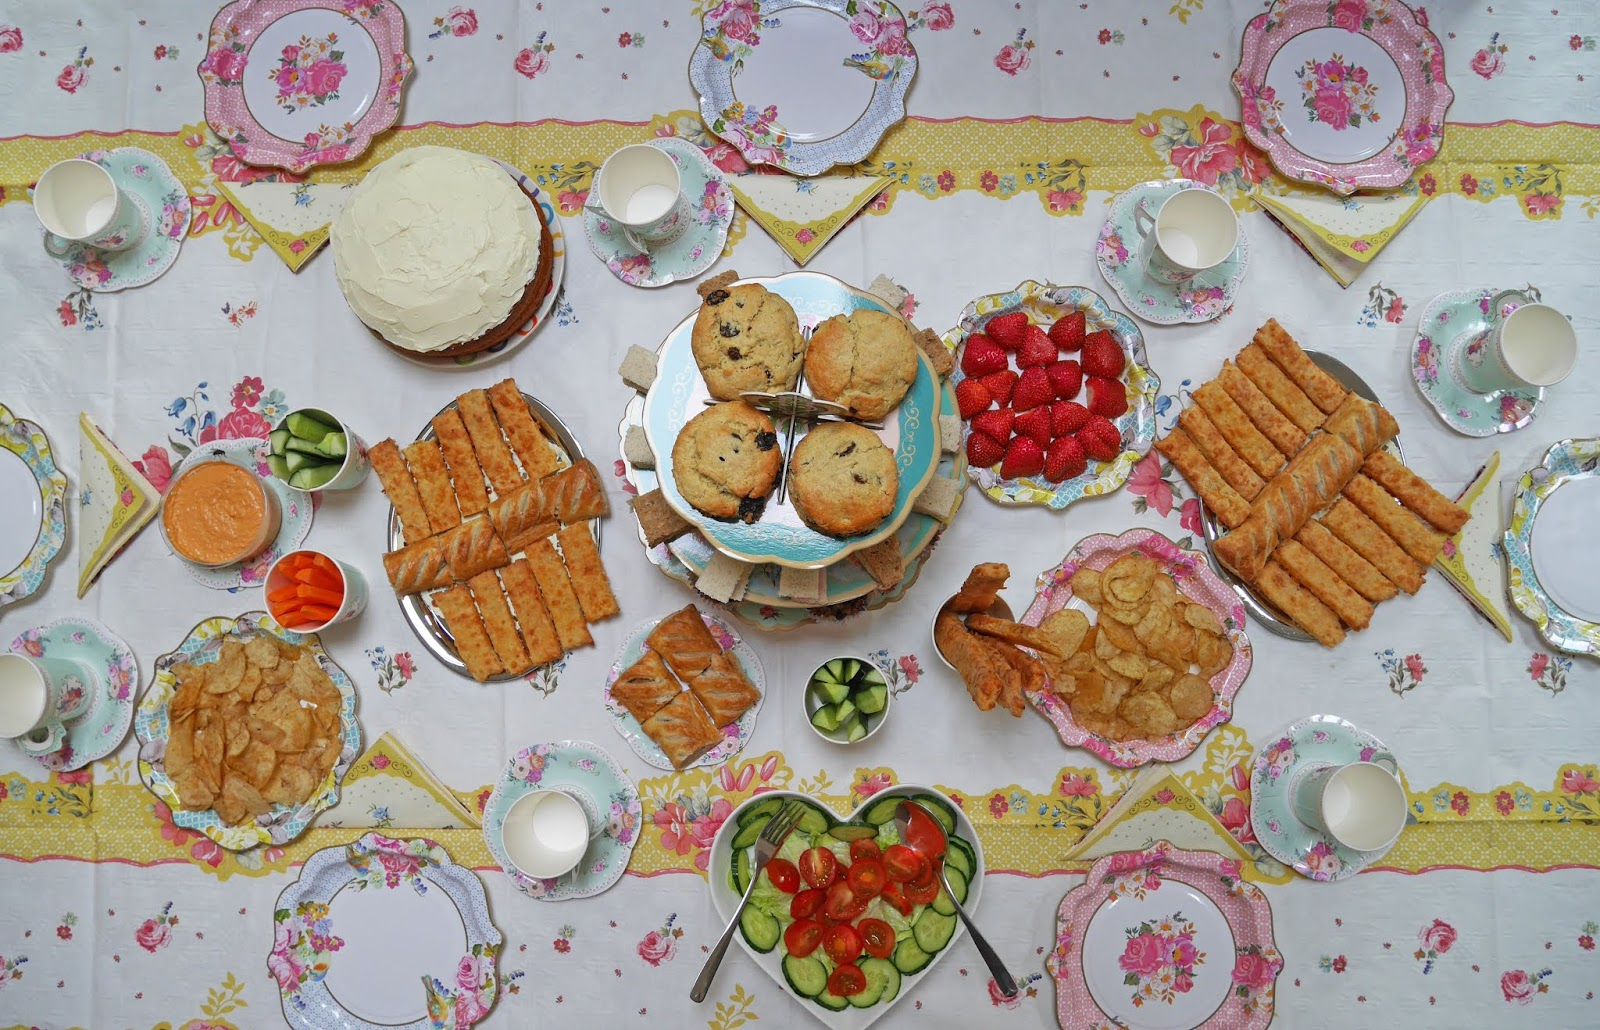 Talking Tables Truly Scrumptious afternoon tea table layout